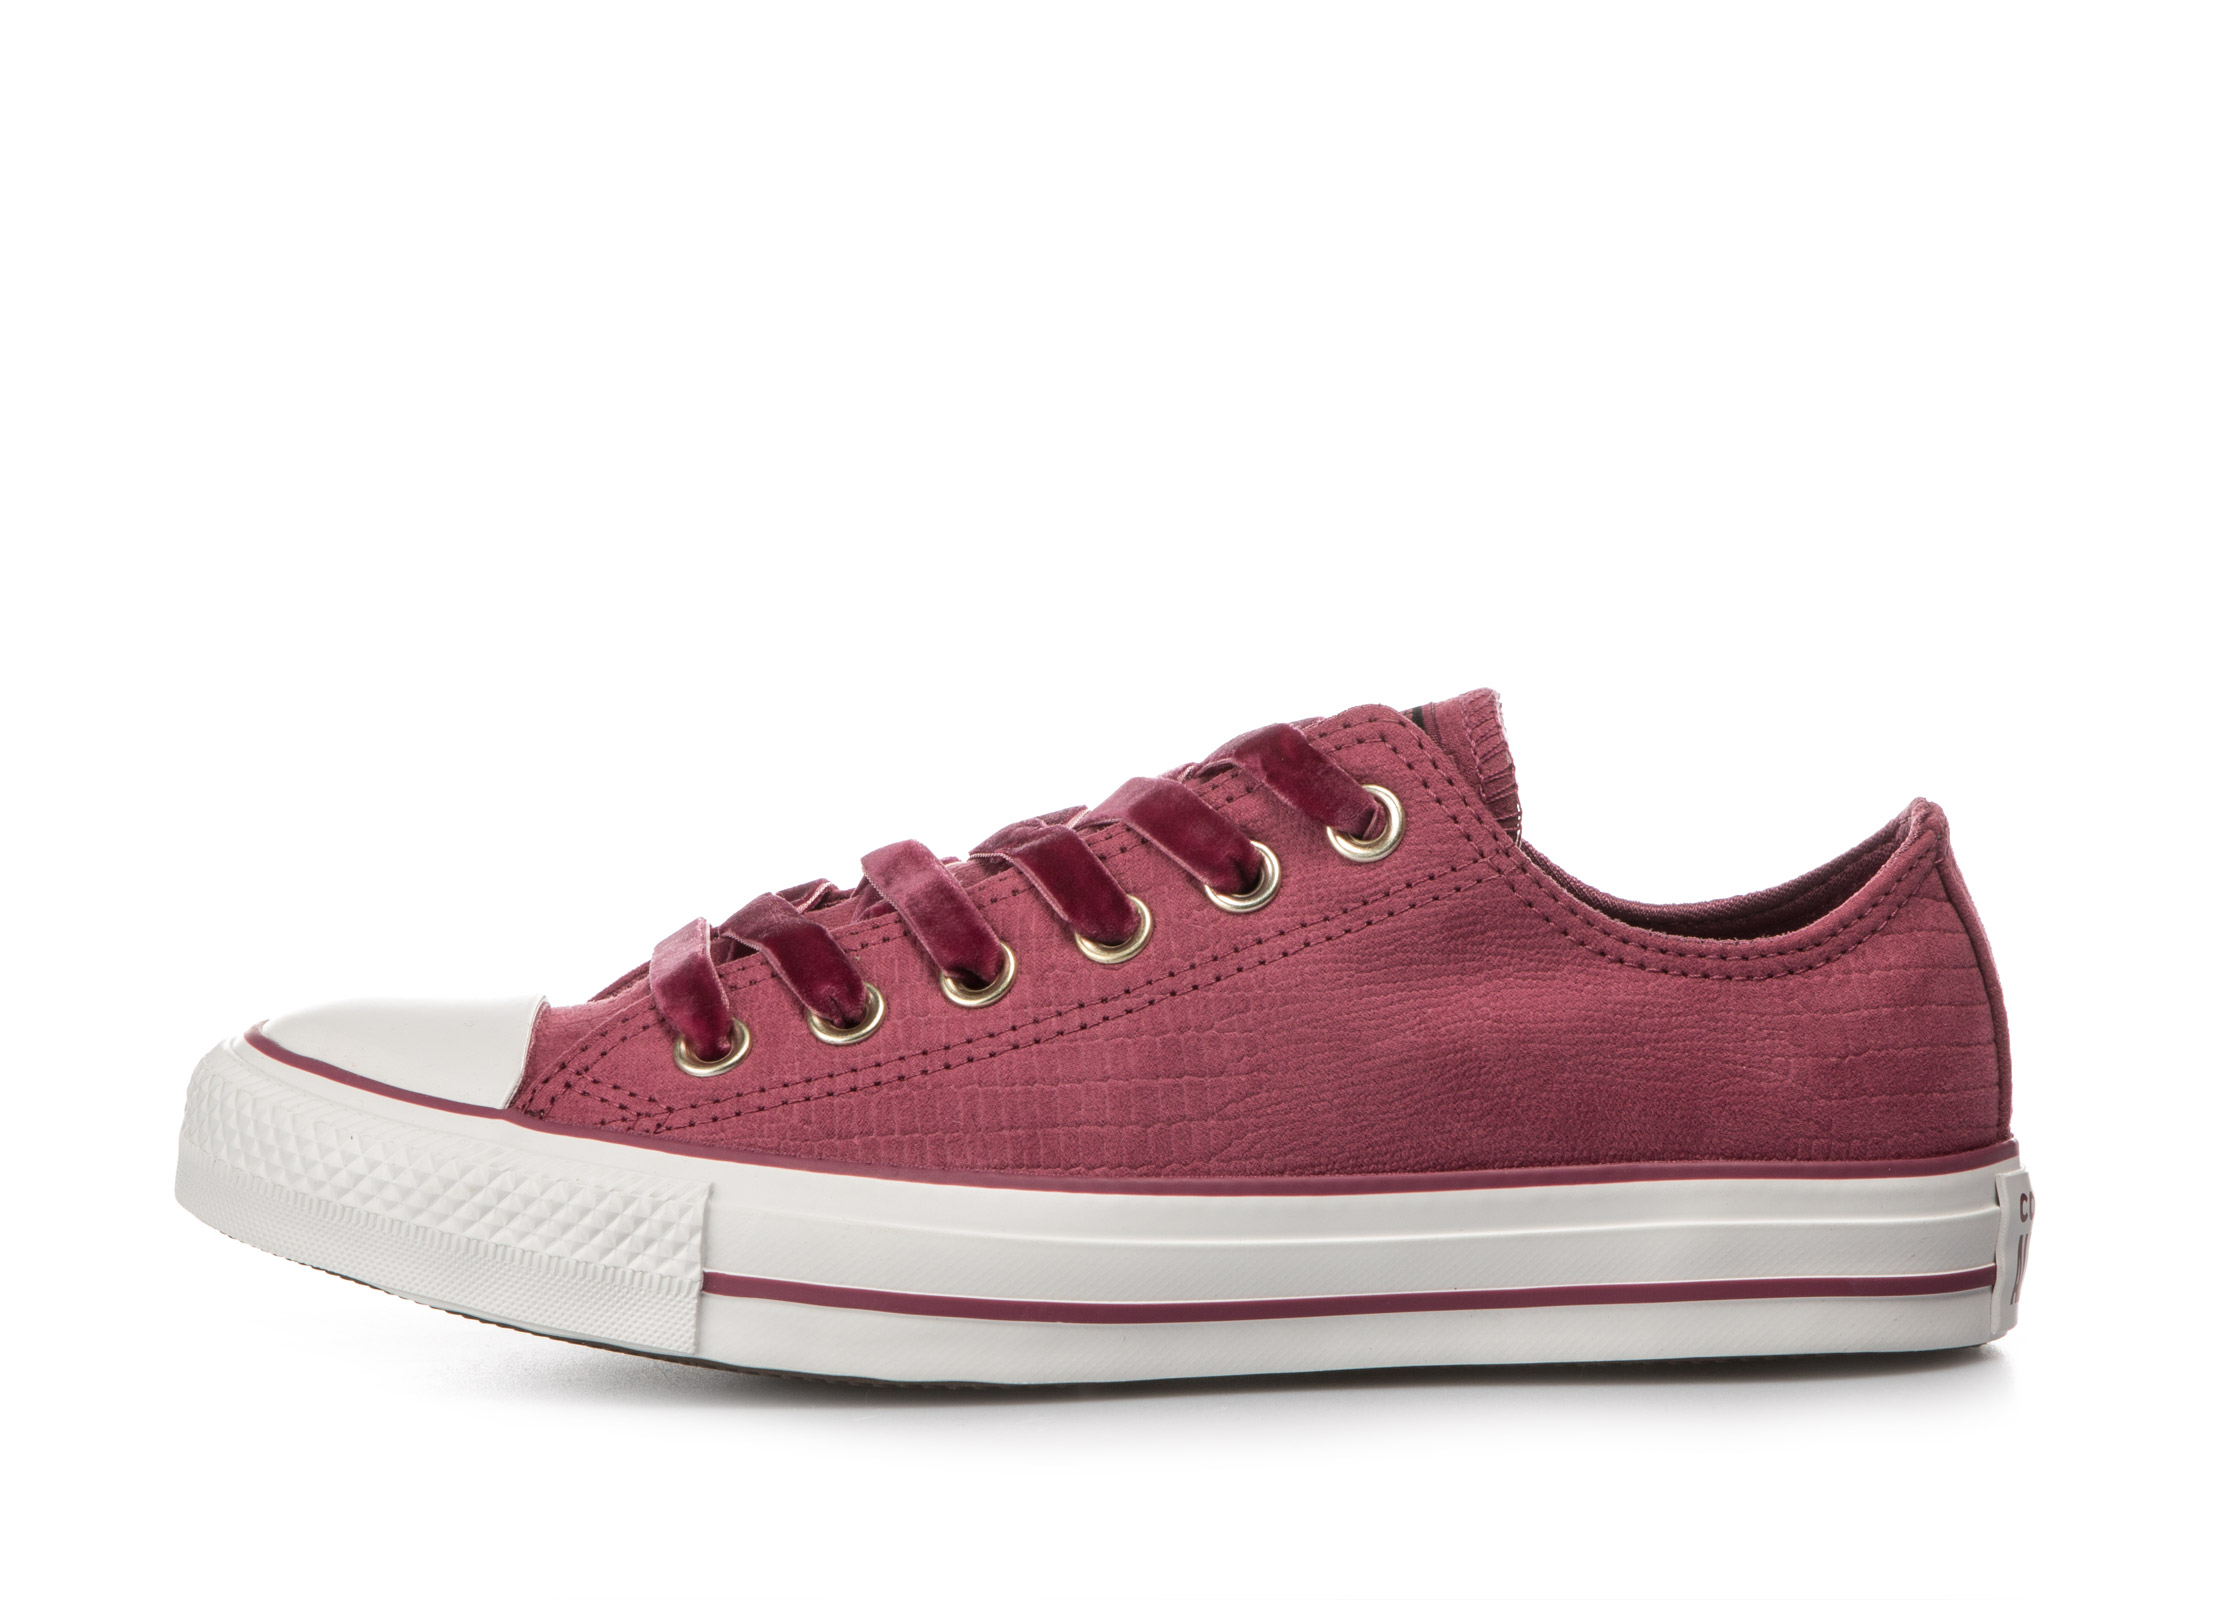 CONVERSE Chuck Taylor All Star Ox 561706C Μπορντό γυναικα   υποδήματα   μόδας